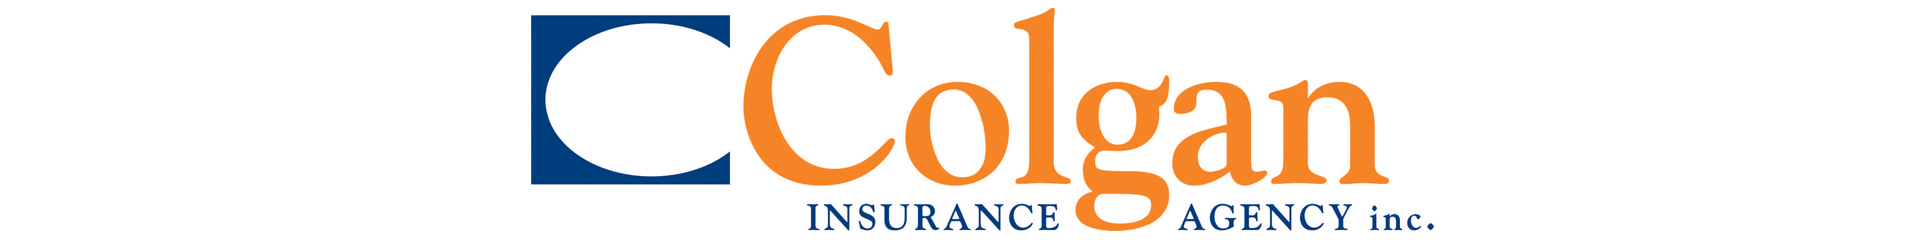 Colgan Insurance Agency